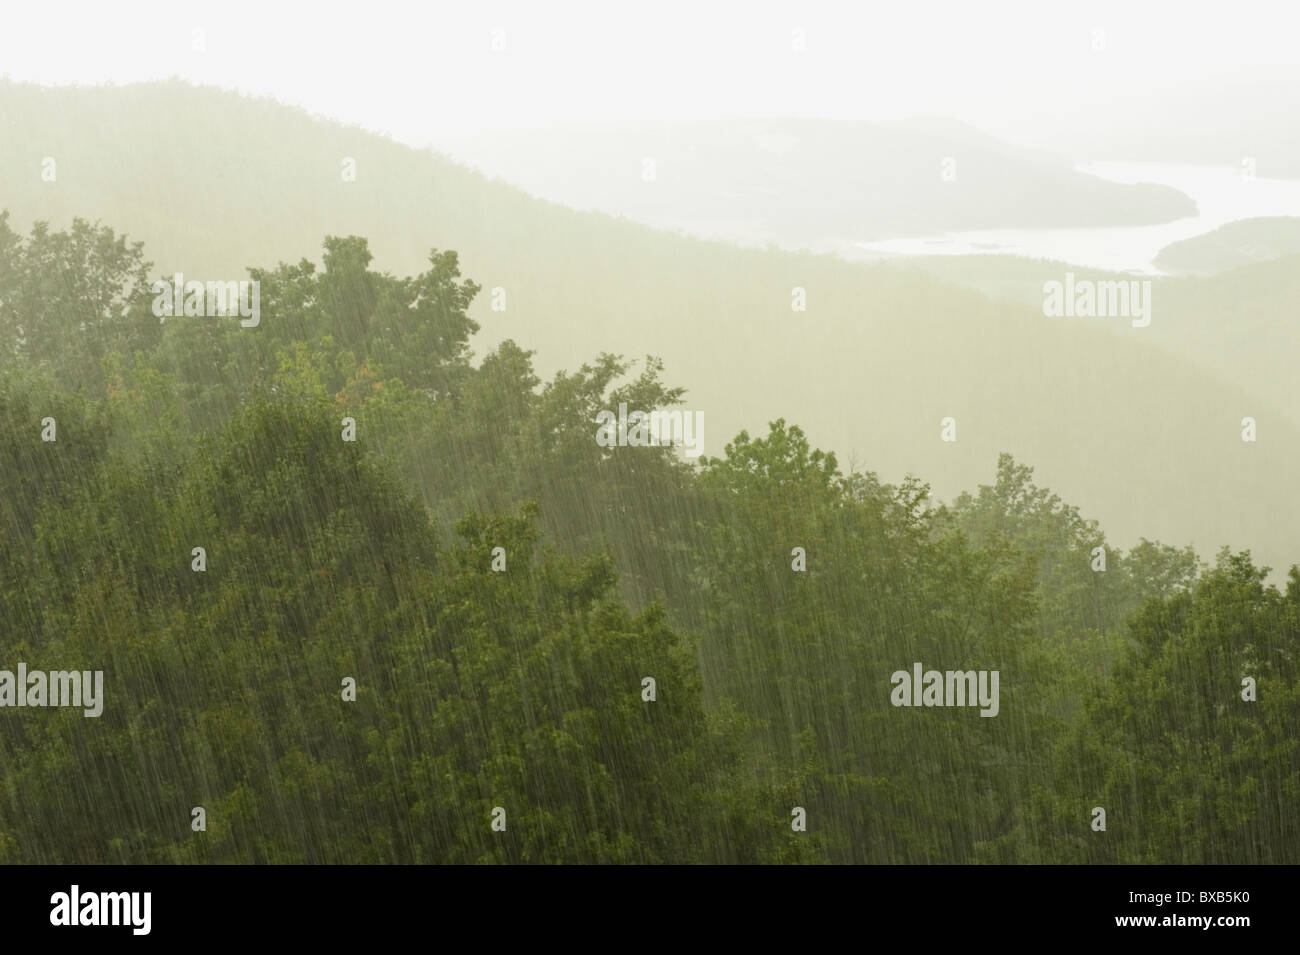 Landscape in rainy day - Stock Image